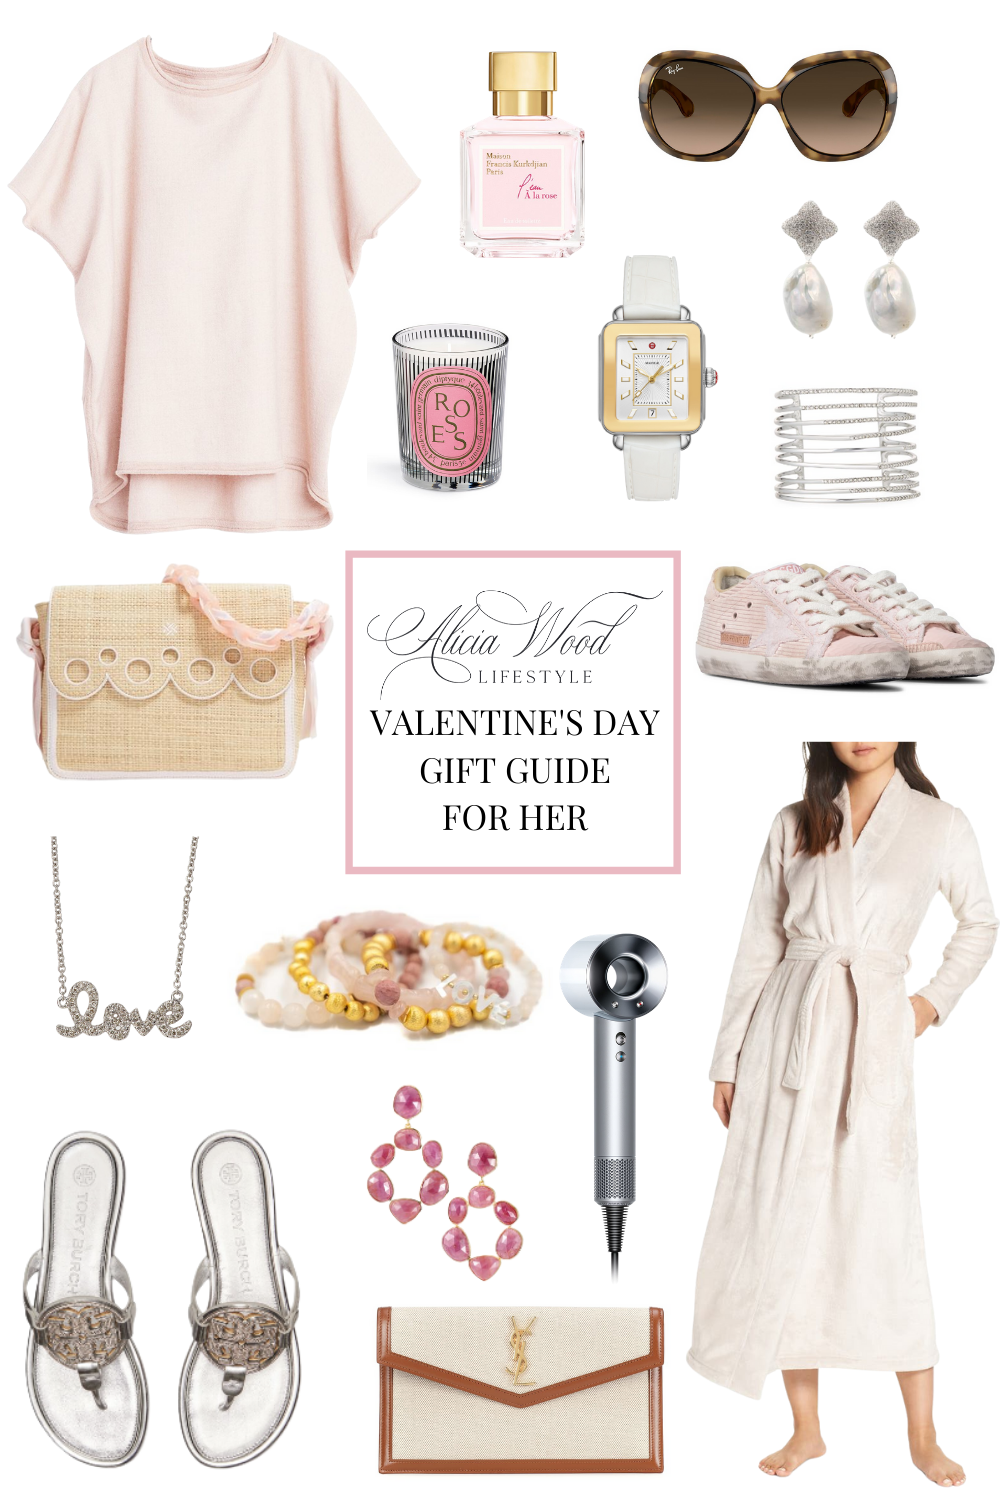 Best Valentine's Gifts for Her